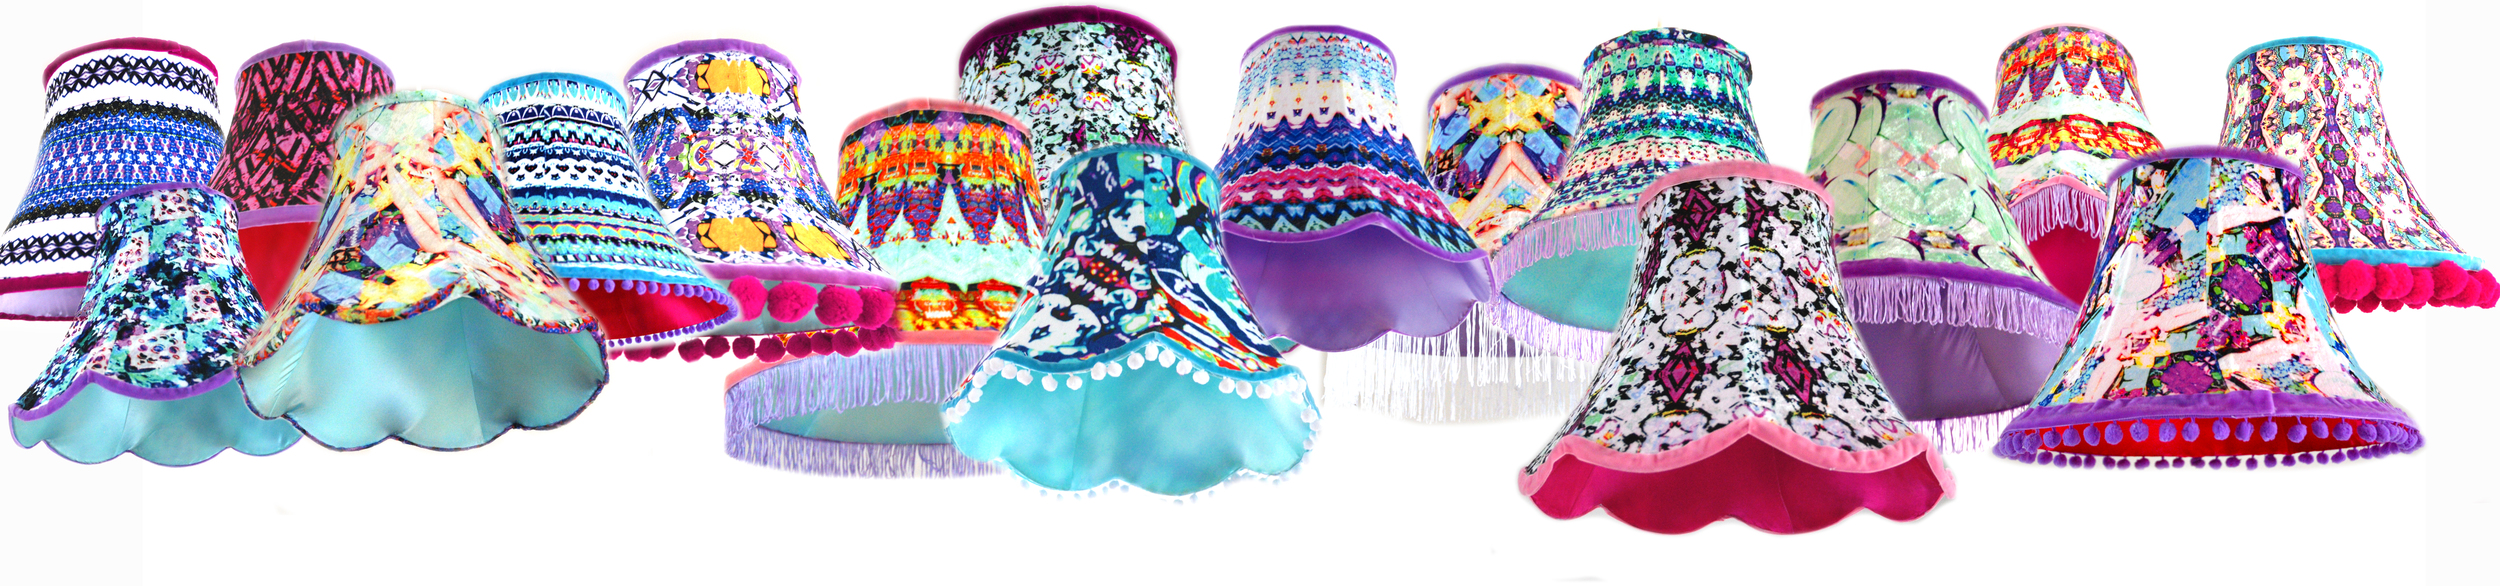 Fabulous handmade lampshade designs by Archie Mac London.